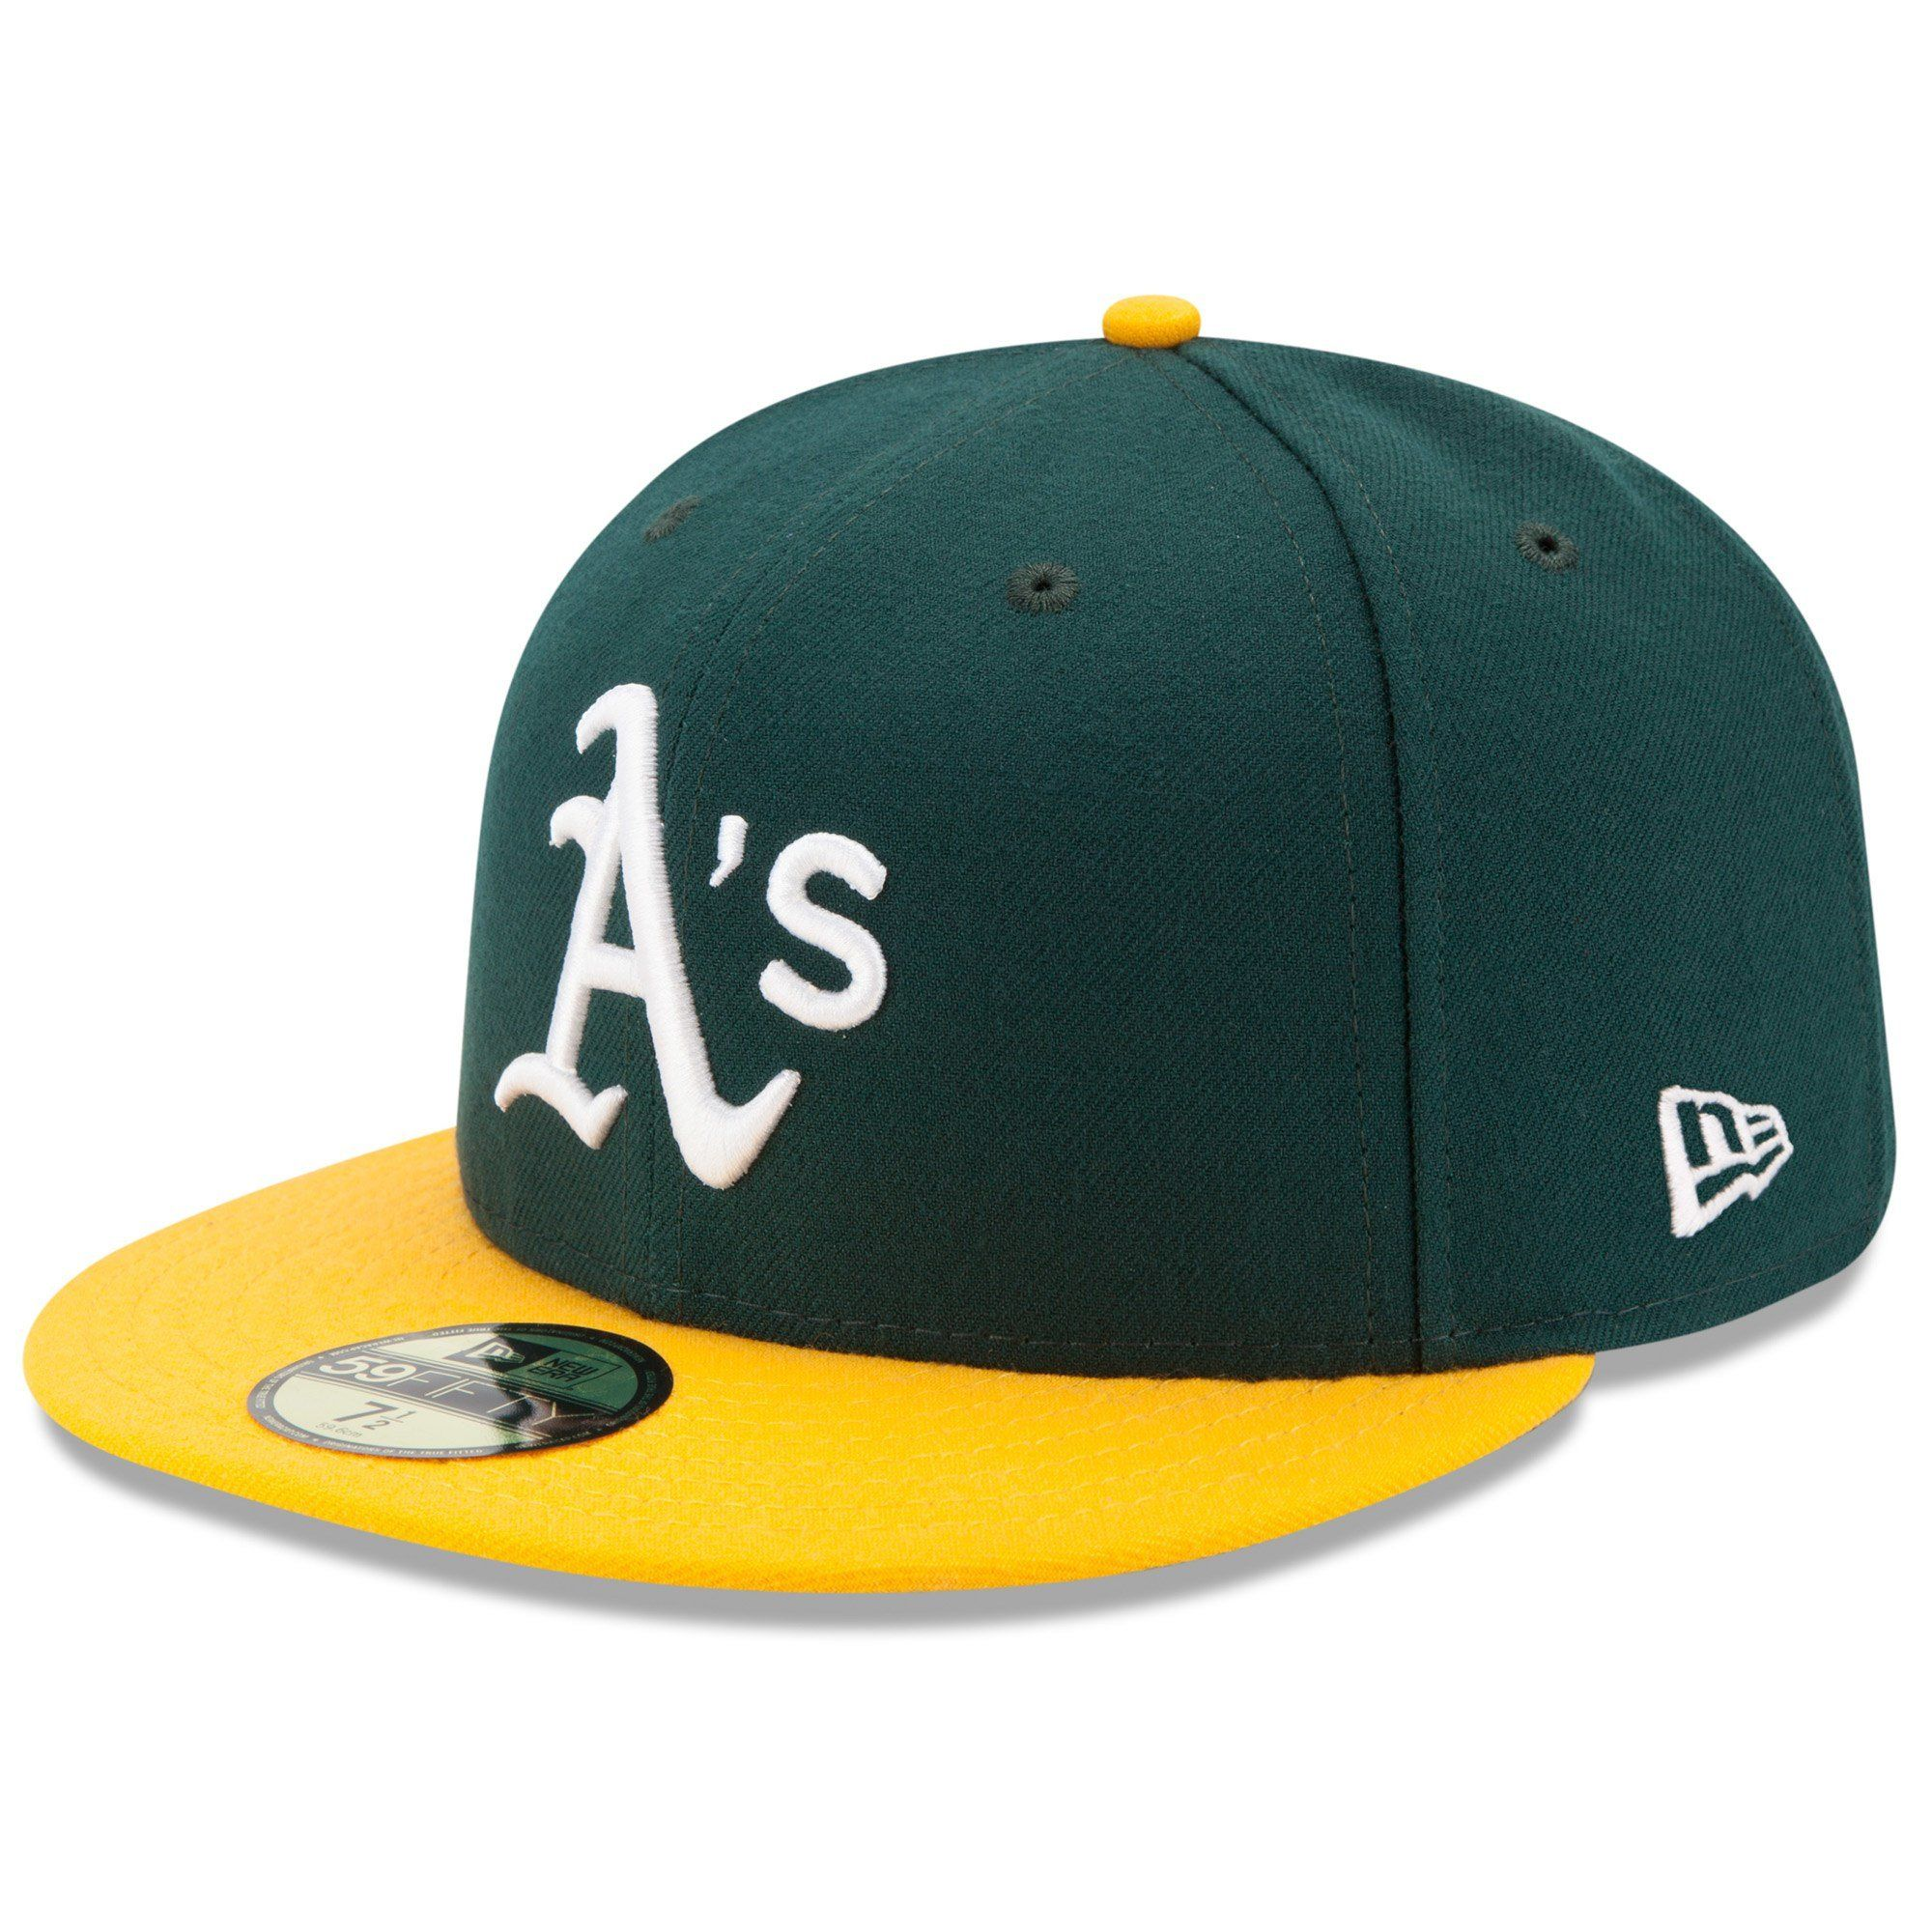 New Era 59fifty MLB On Field Fitted Hat Cap Oakland